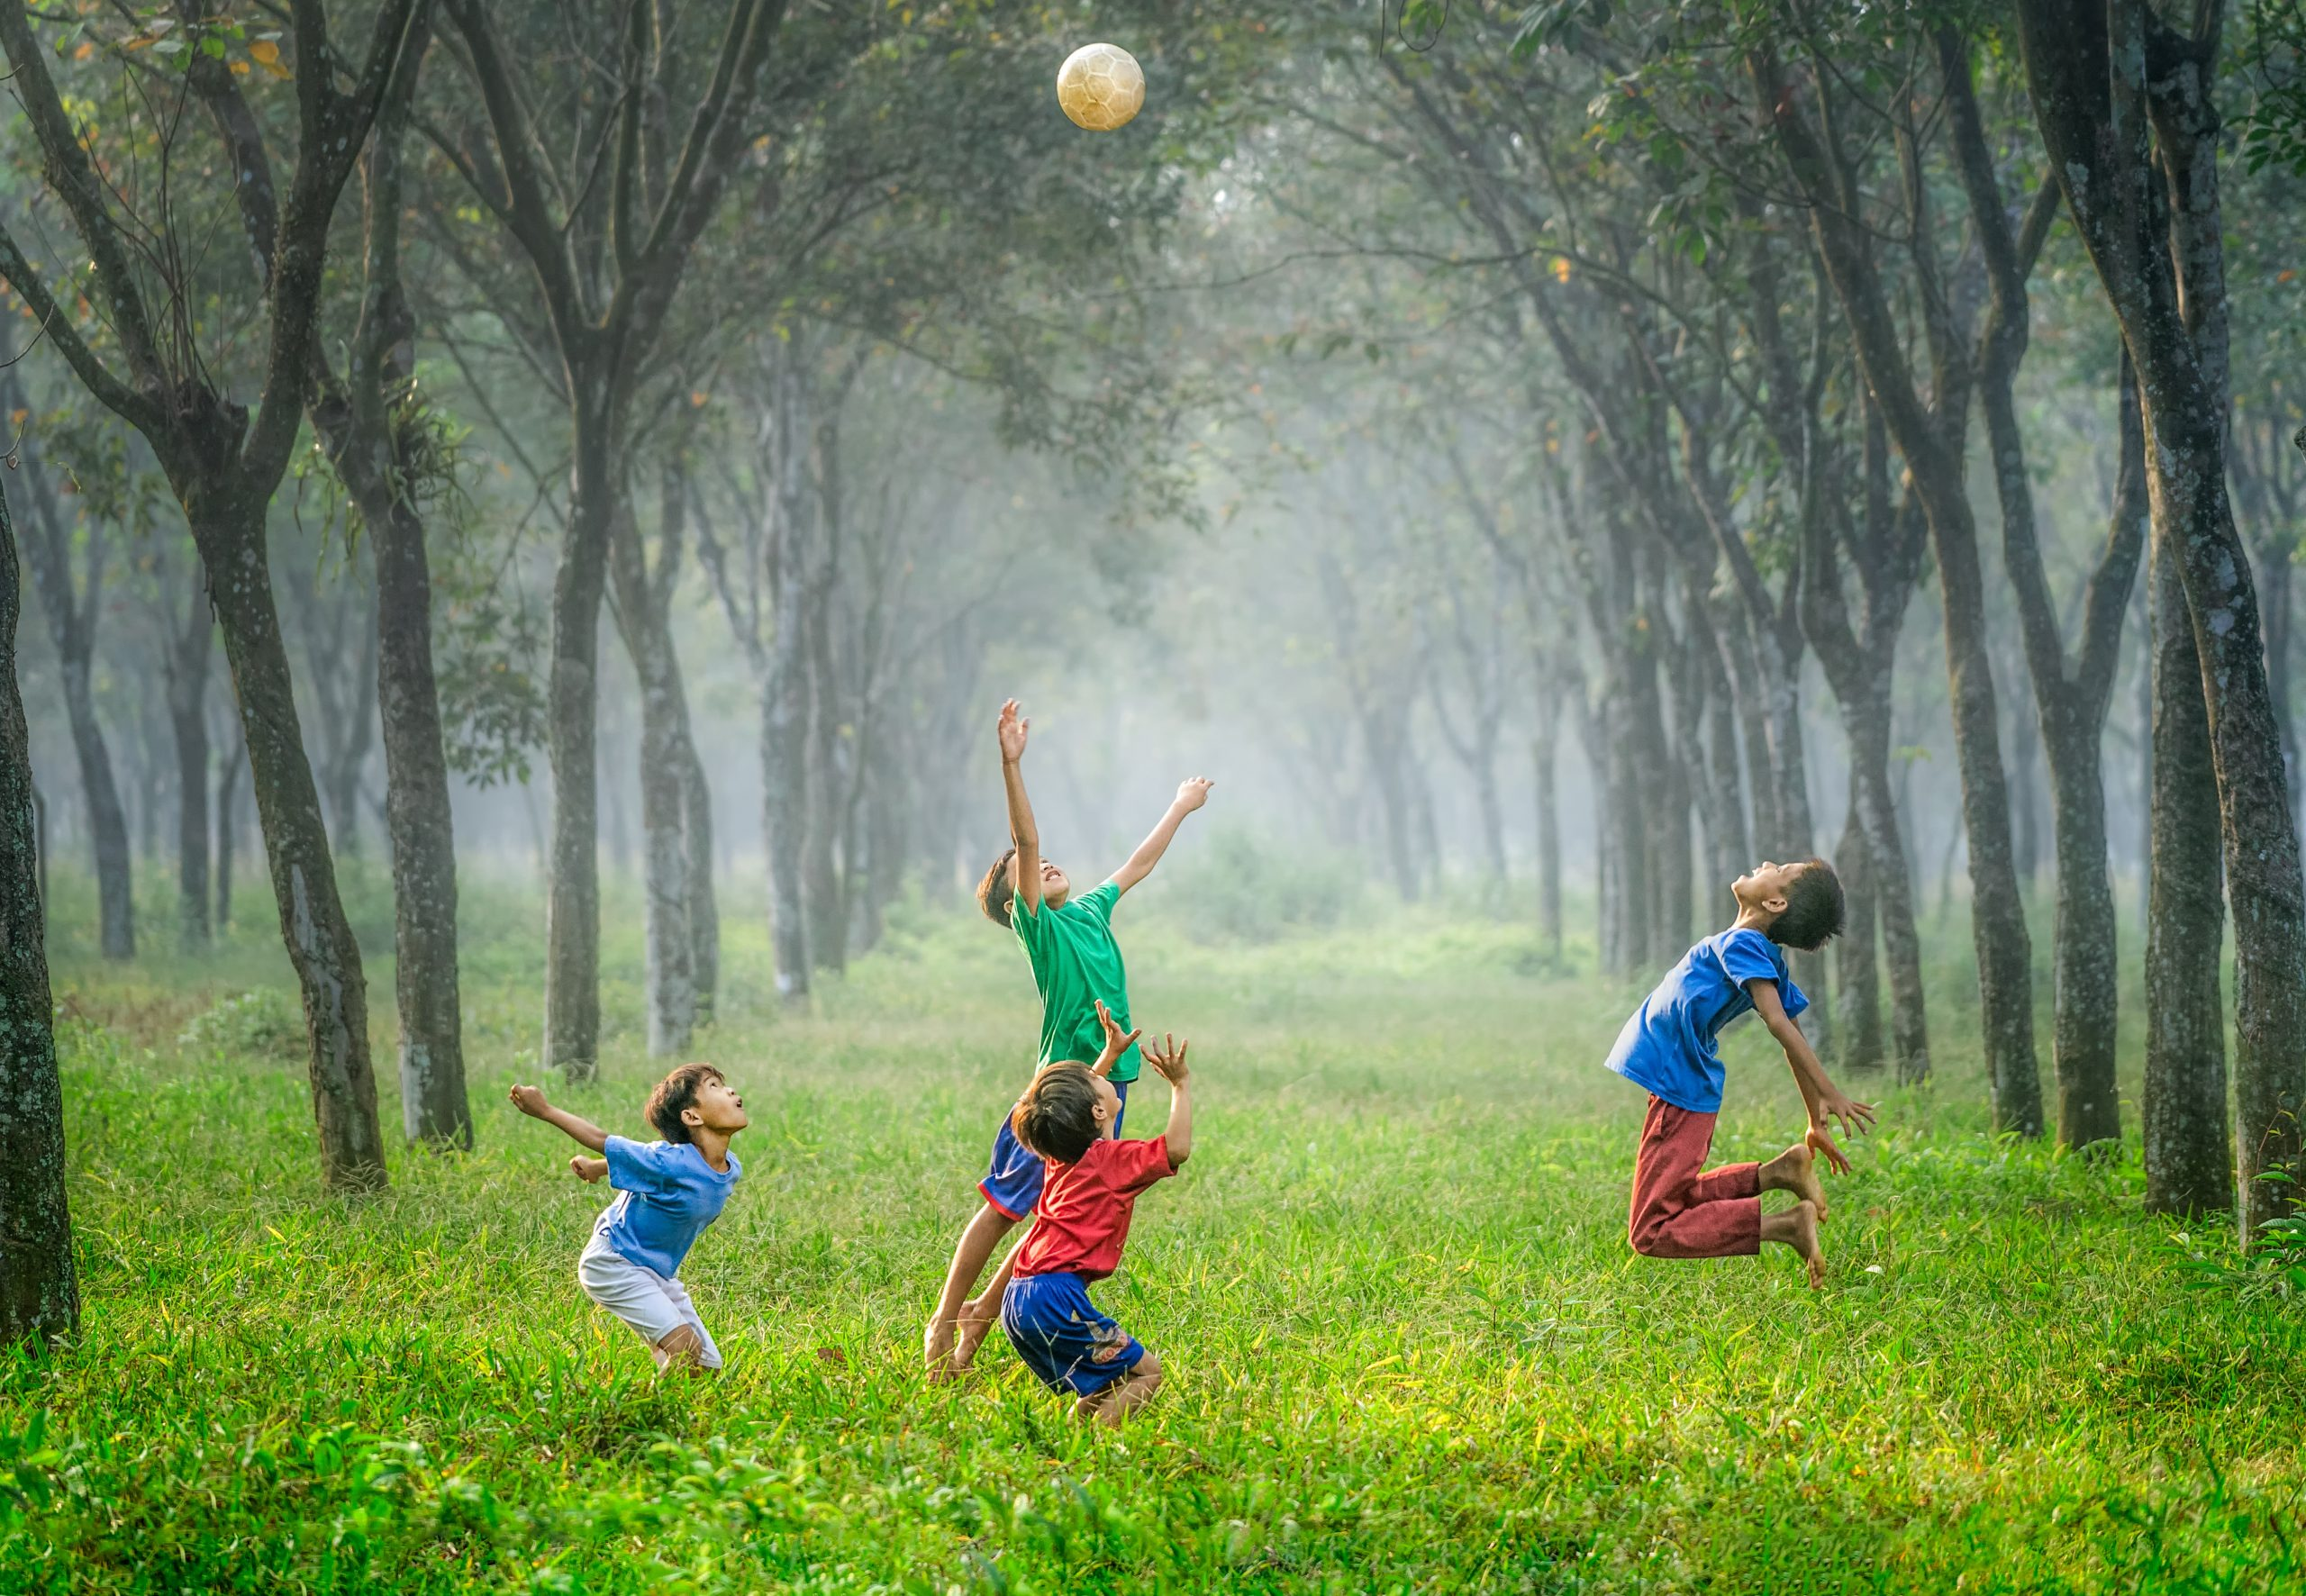 four boy playing ball on green grass